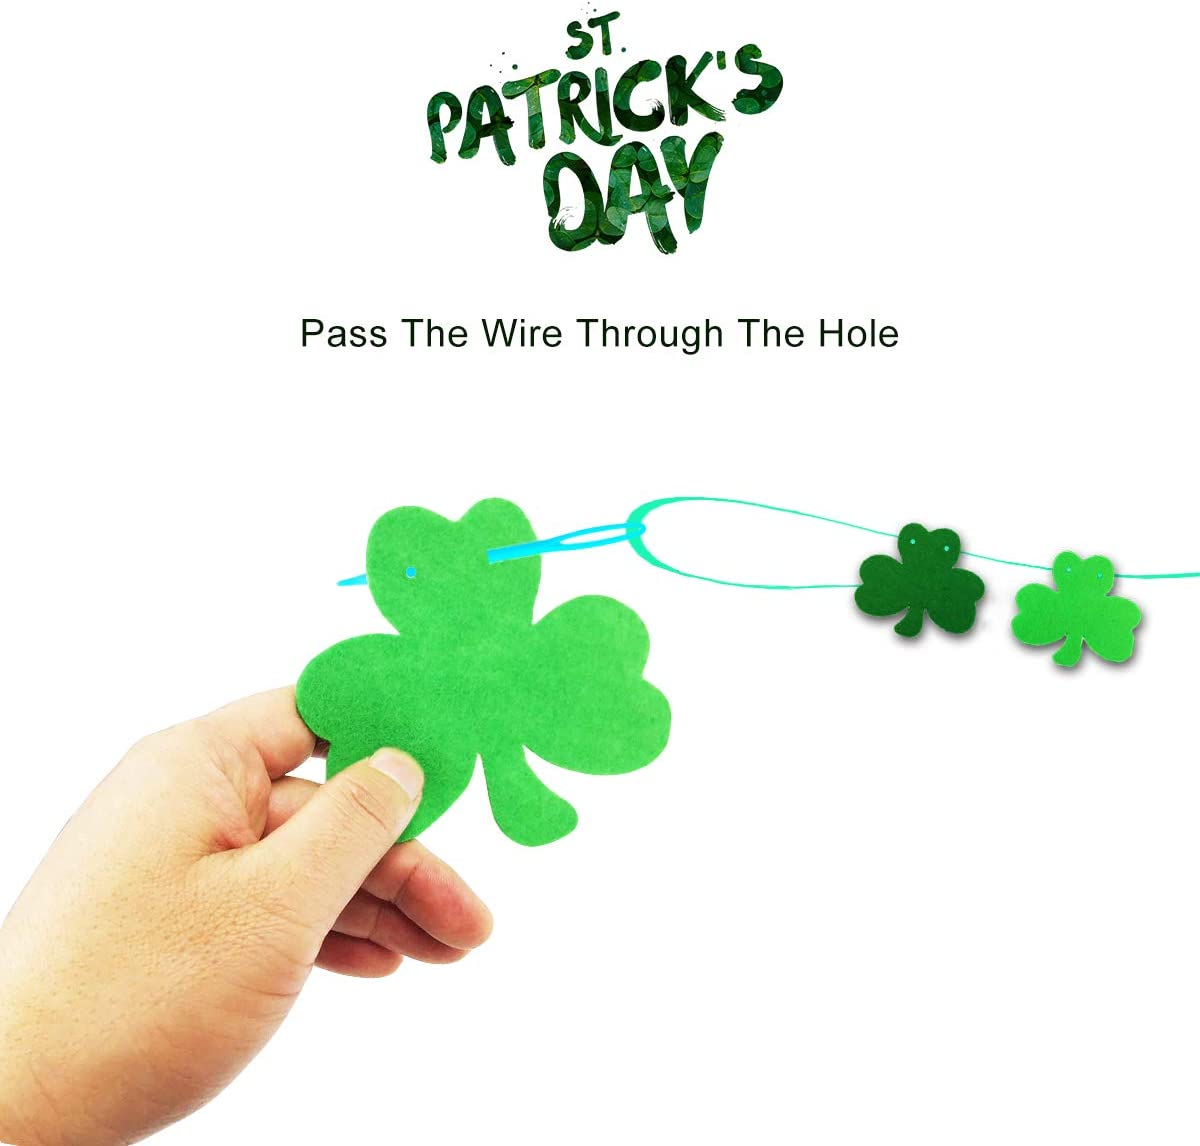 St St Paddys Decor St Paddy/'s Decor Coolhills Patrick s Day Irish Decoration Shamrock Clover Bunting Garland Ribbon Banner Party Supplies Ornament